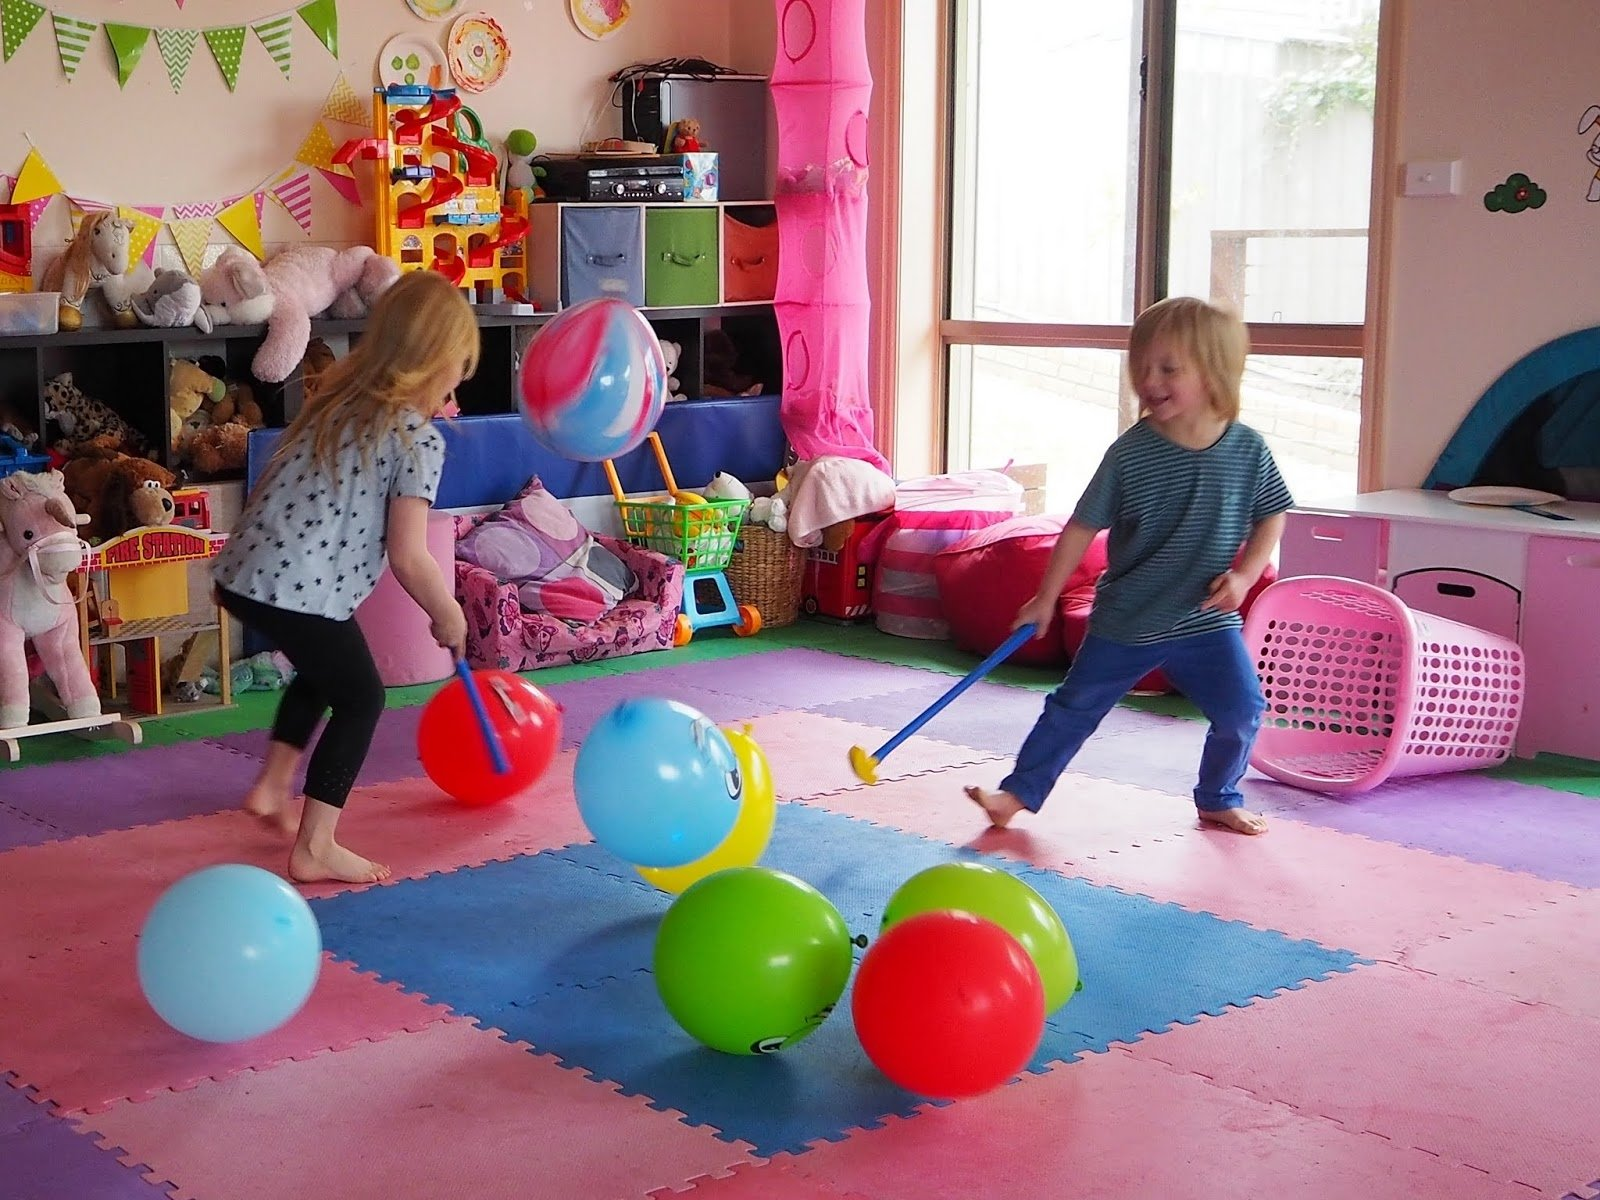 10 Perfect Party Game Ideas For Kids strikingly idea birthday party game ideas for kids indoors learn 1 2021